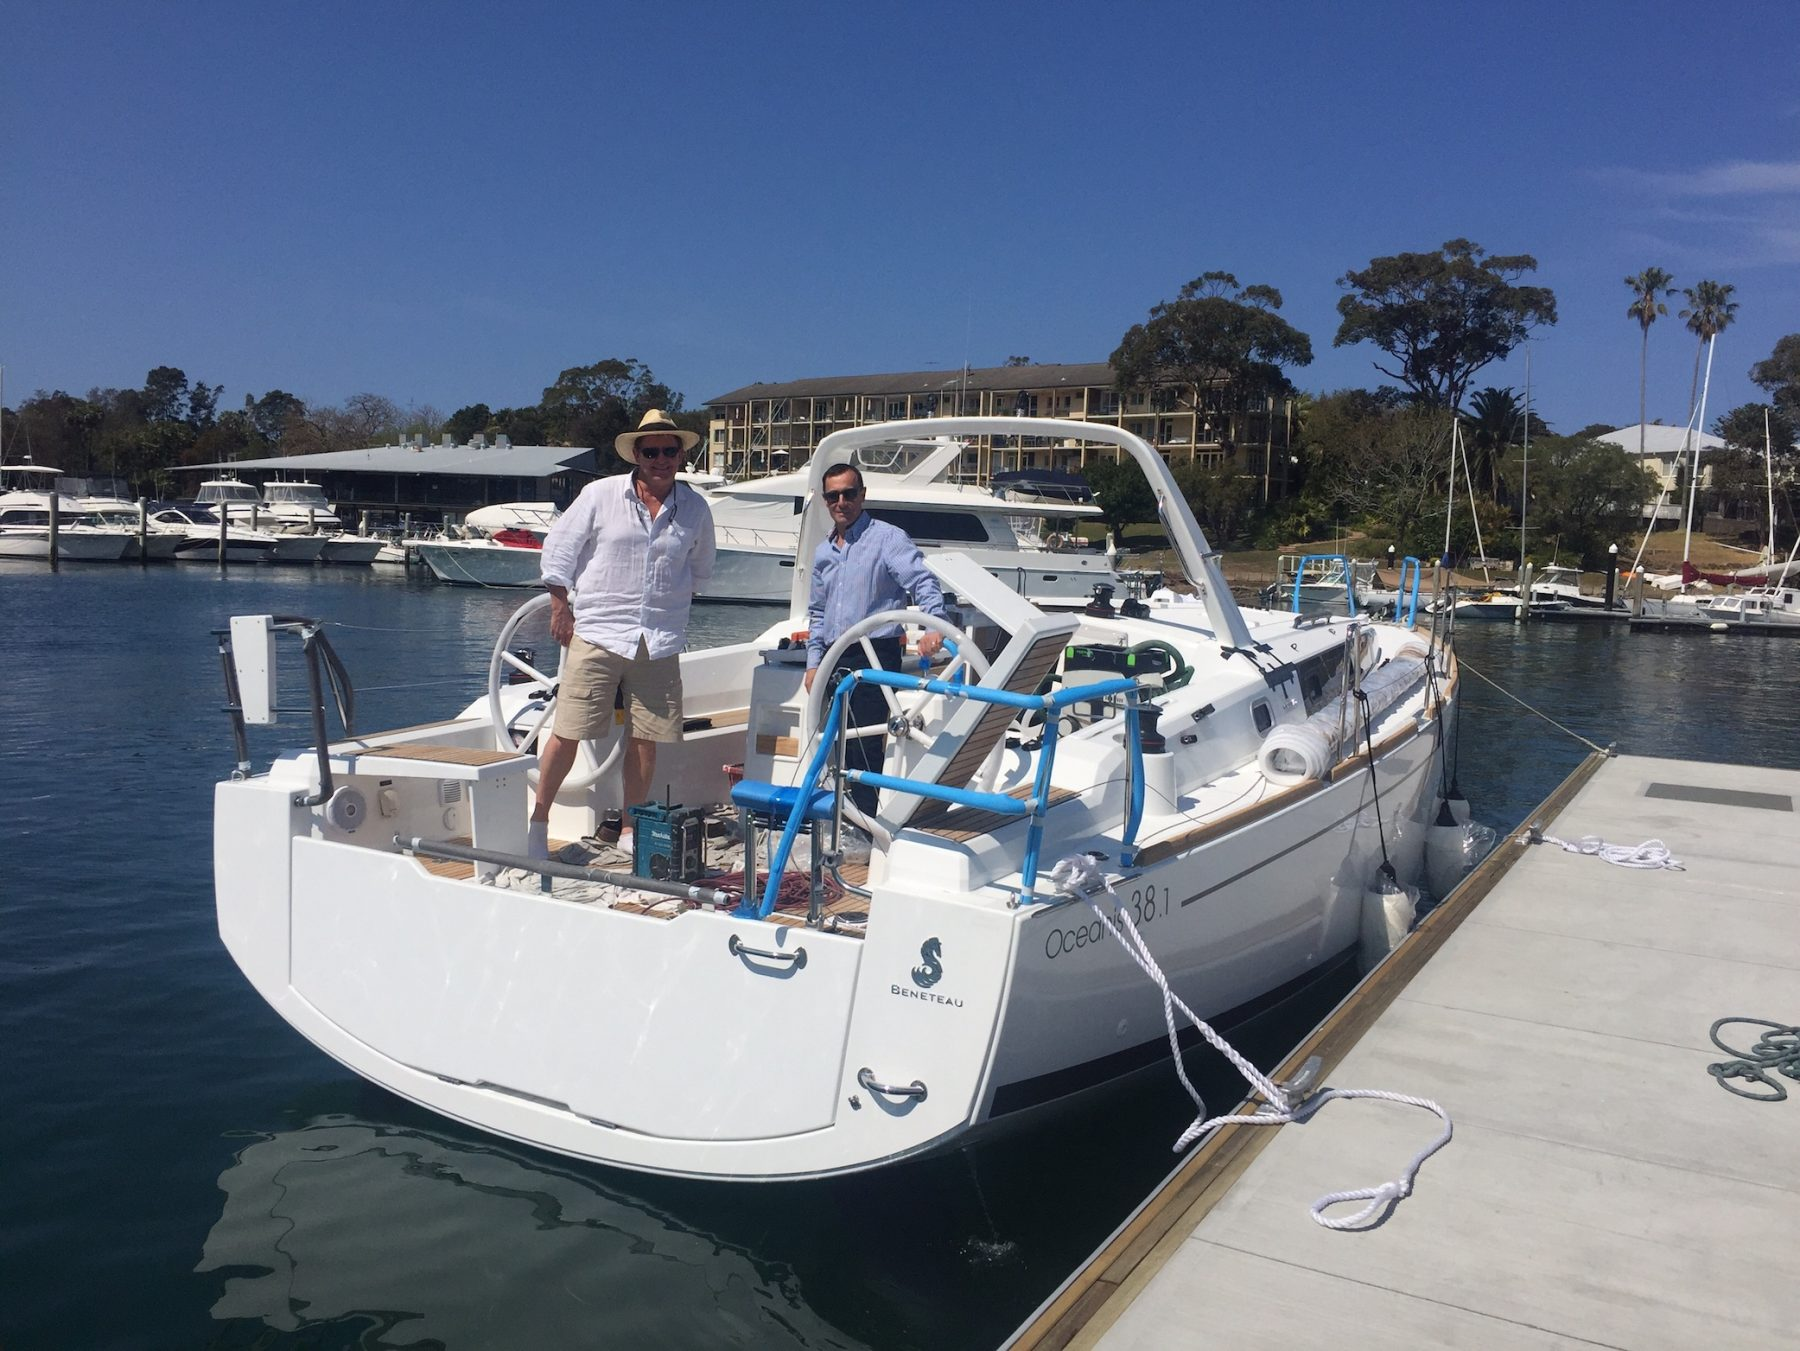 Oceanis 38.1 - A perfect compromise